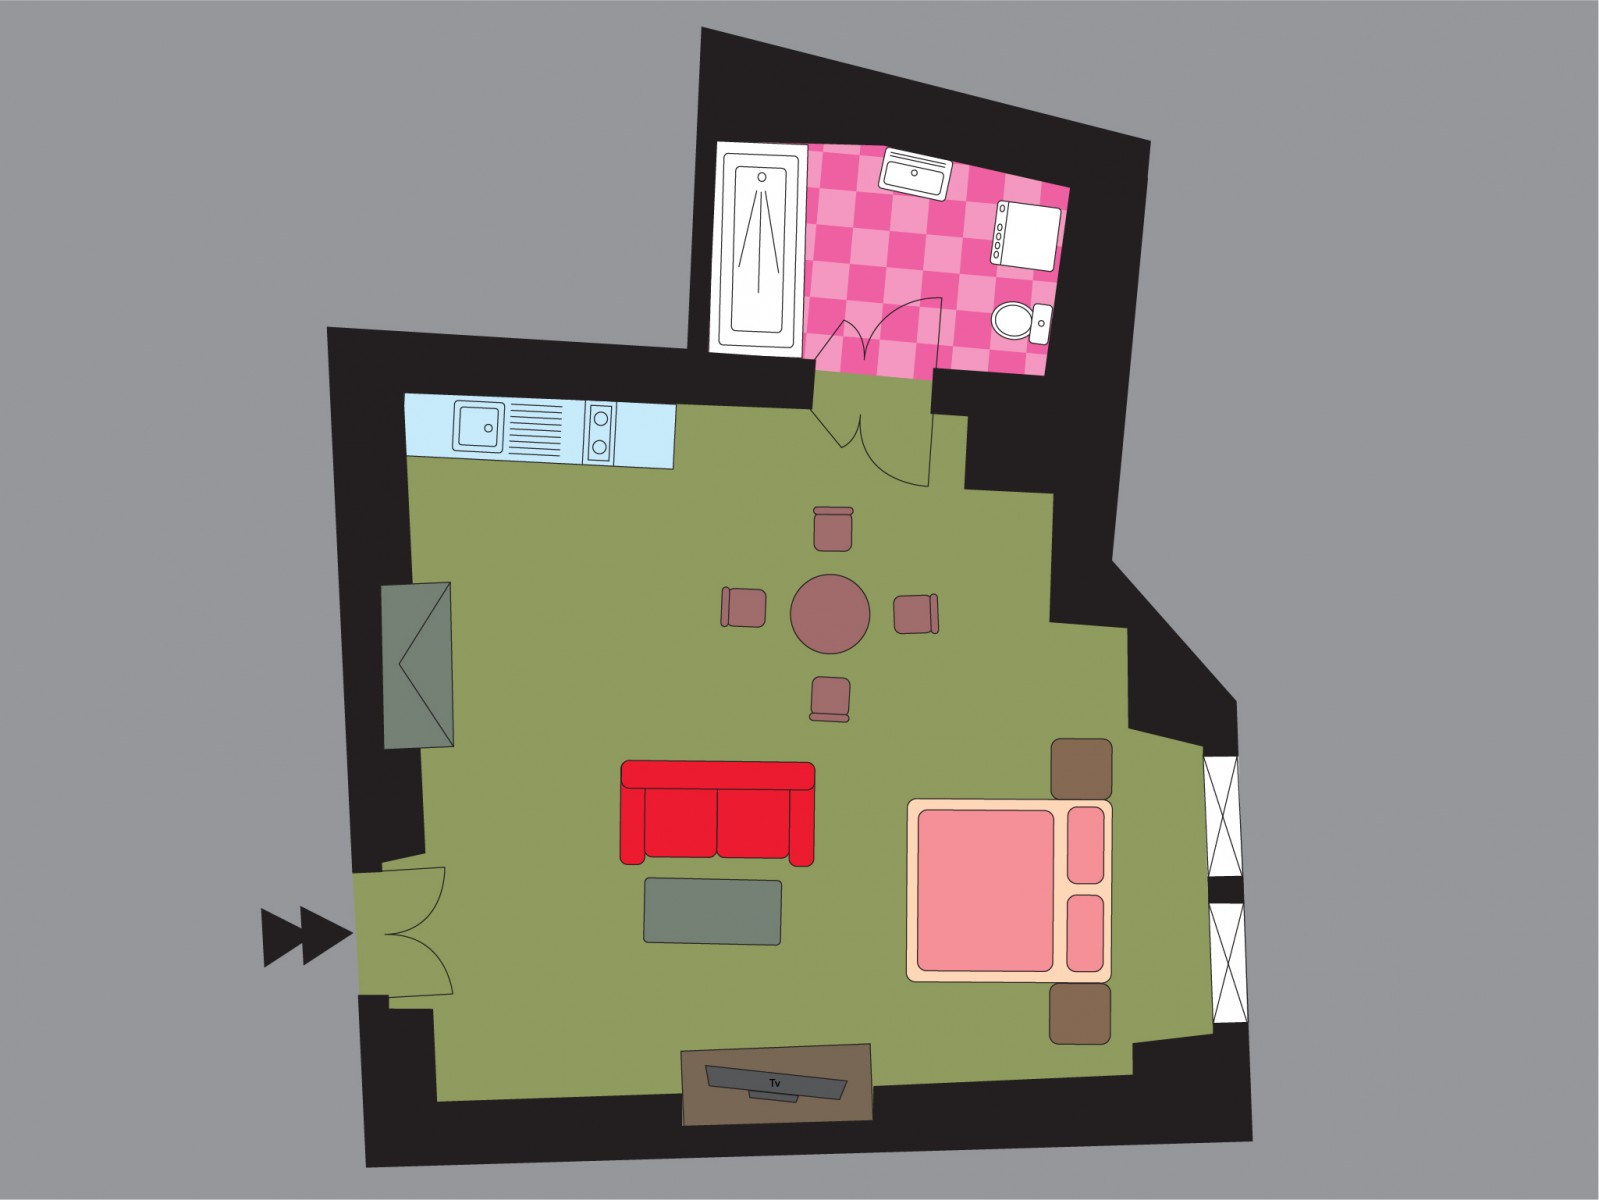 Hollyhock Apt. Floor Plan